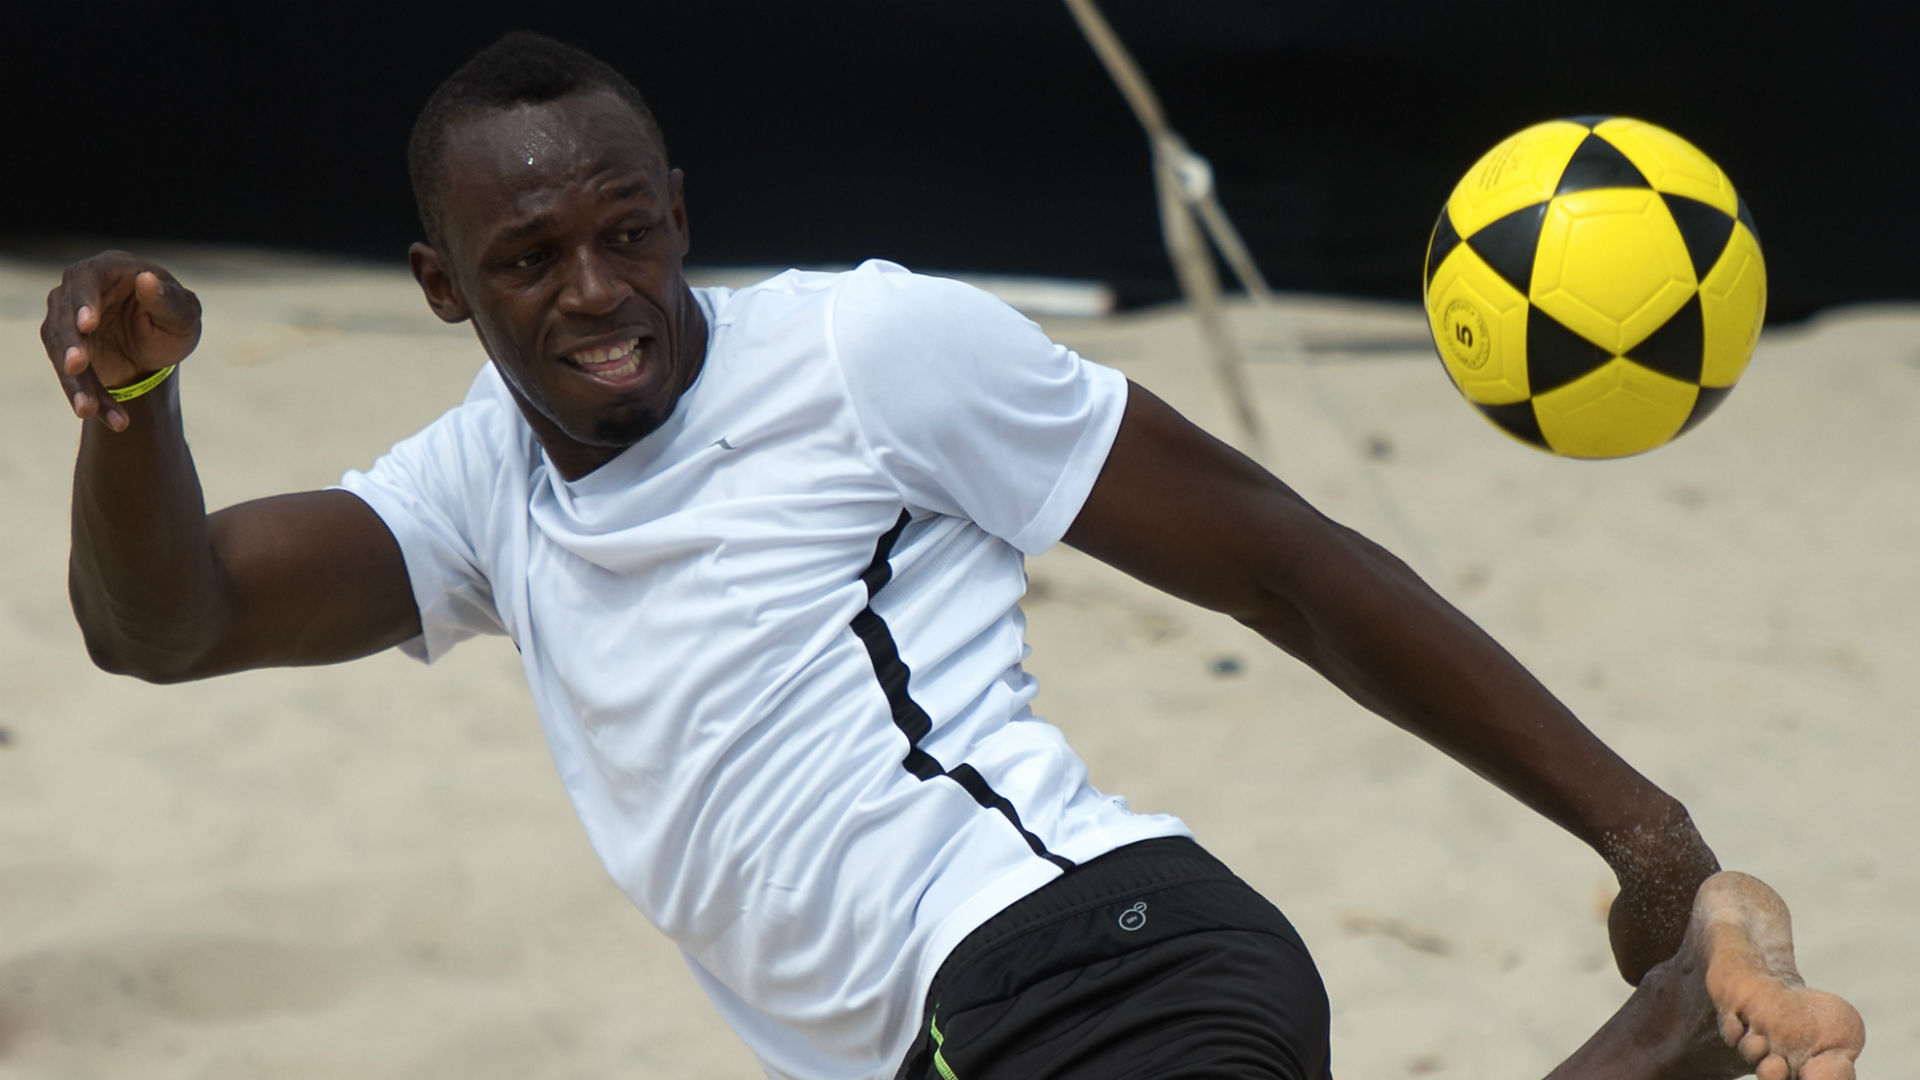 Bolt arrived in Australia with the dream of becoming a professional footballer